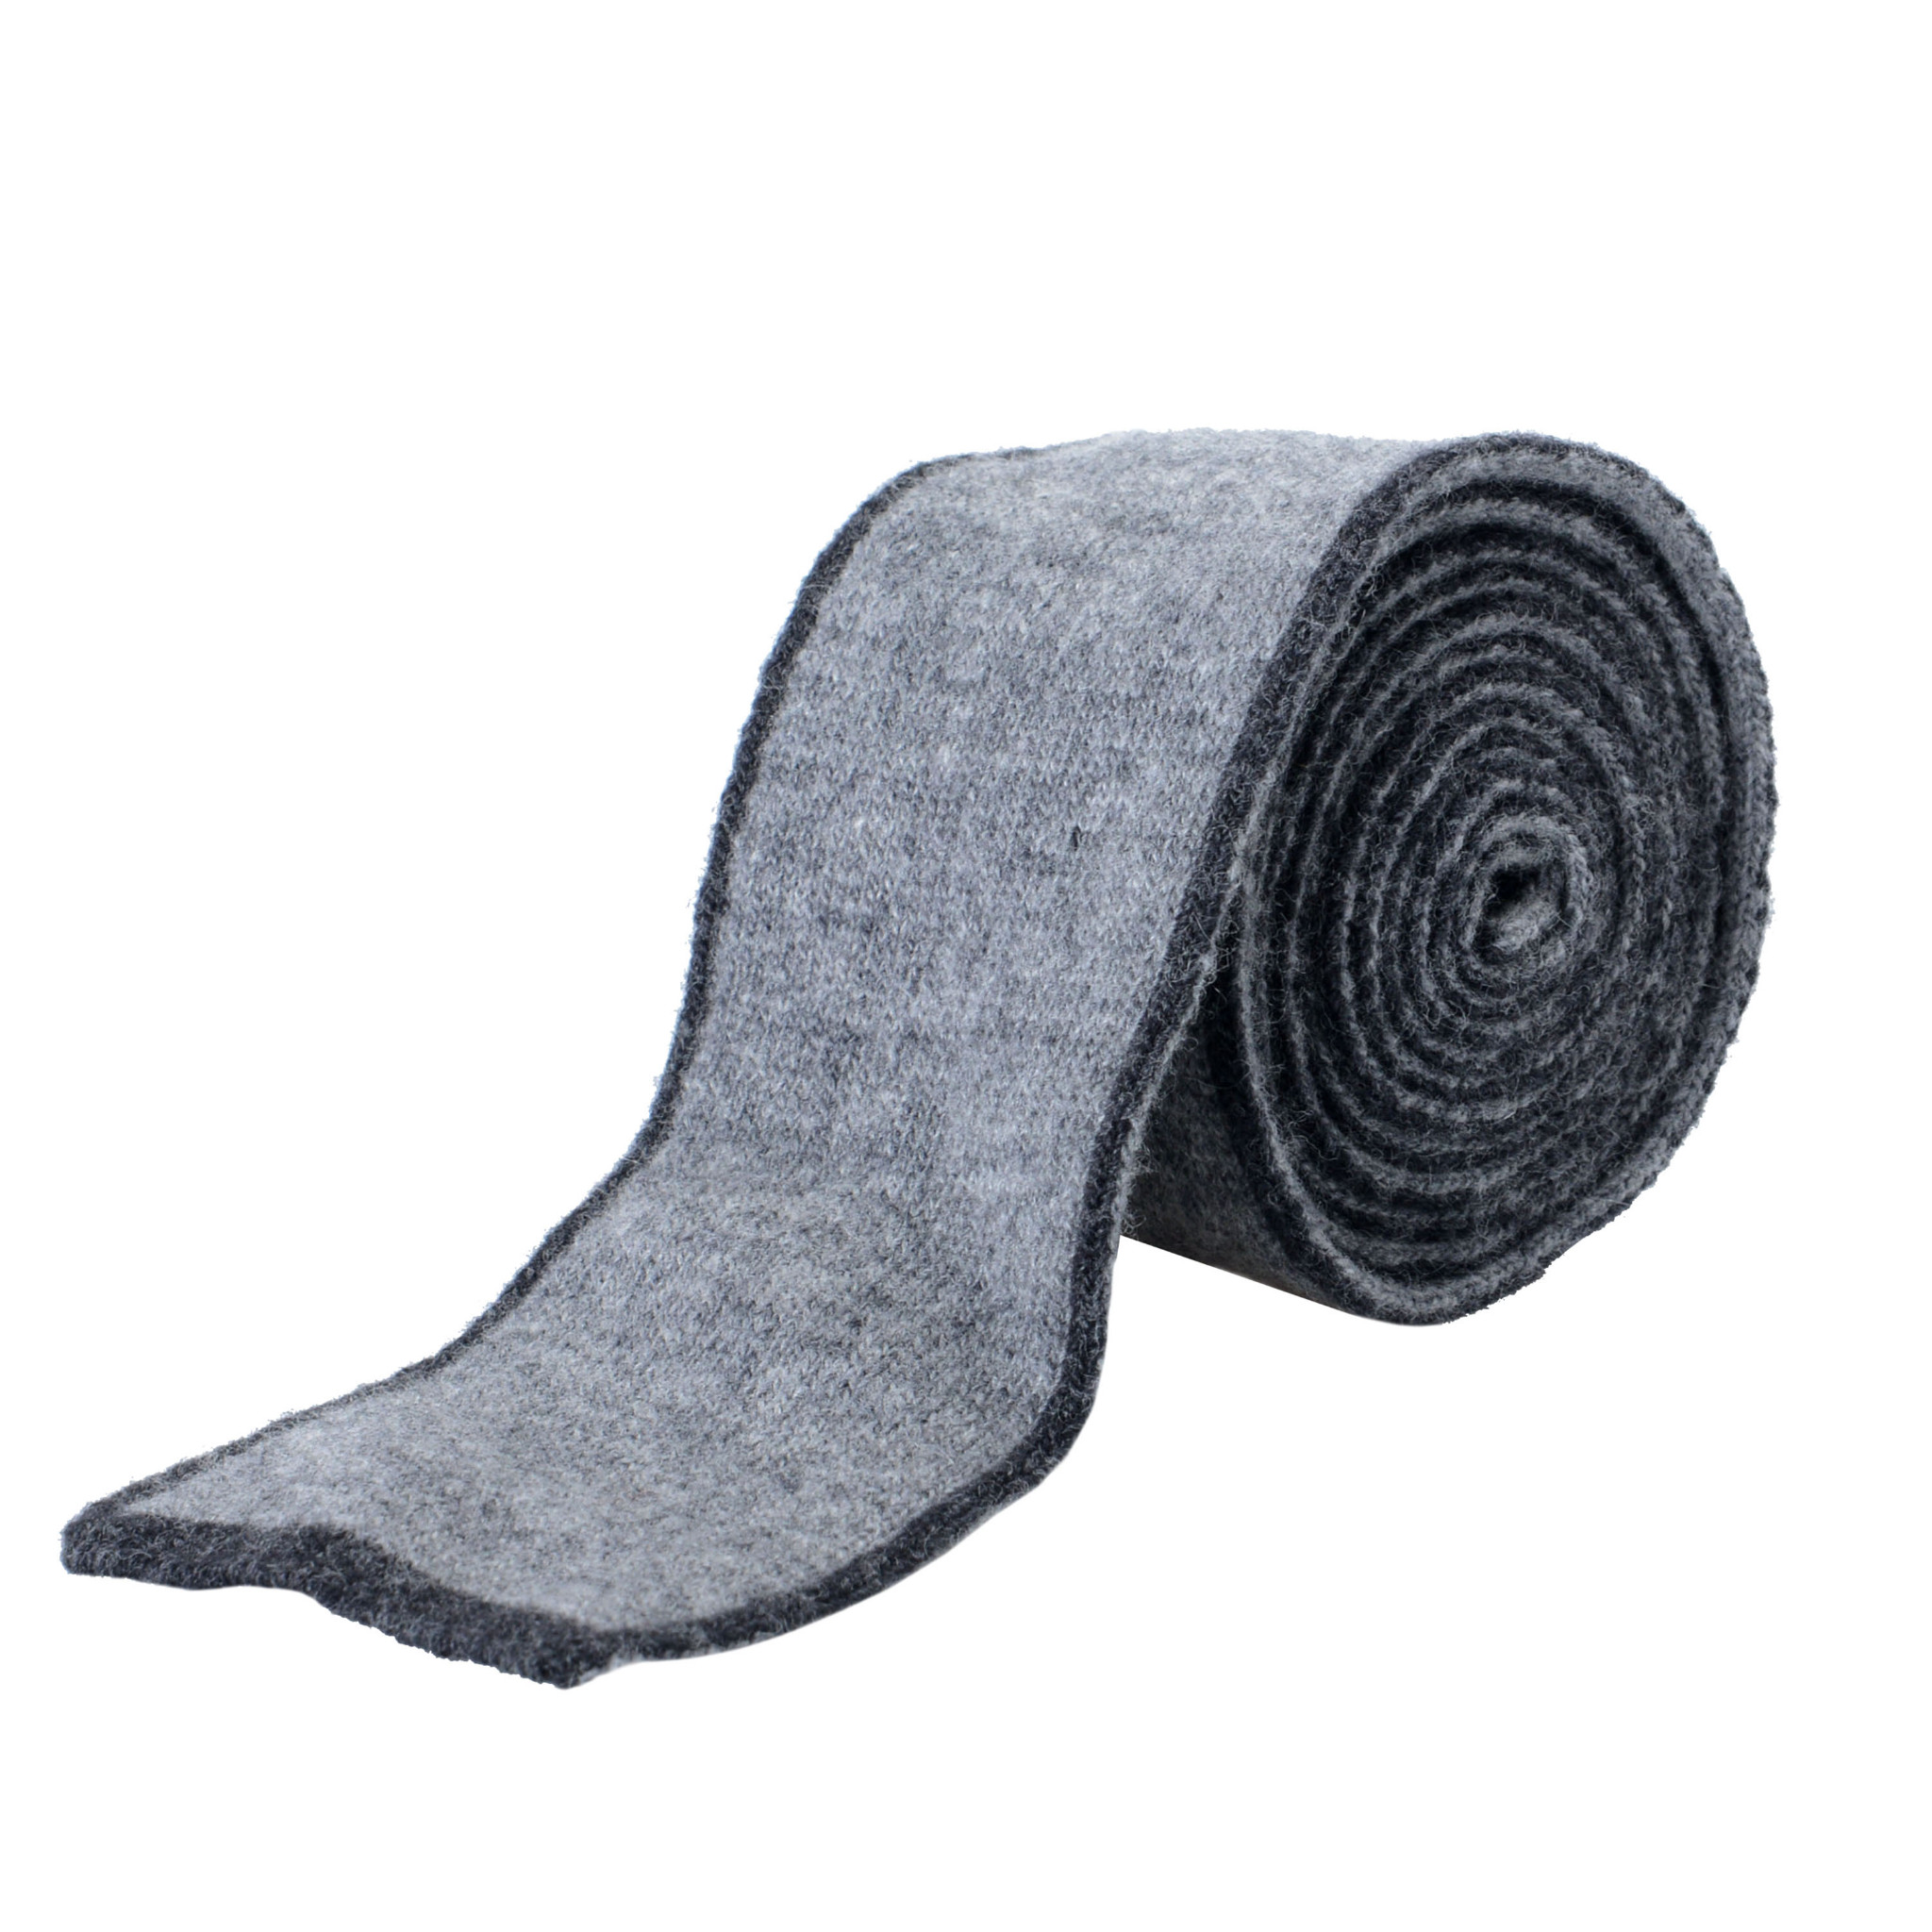 Hugo Boss Men/'s Gray Knitted 100/% Silk Square End Tie